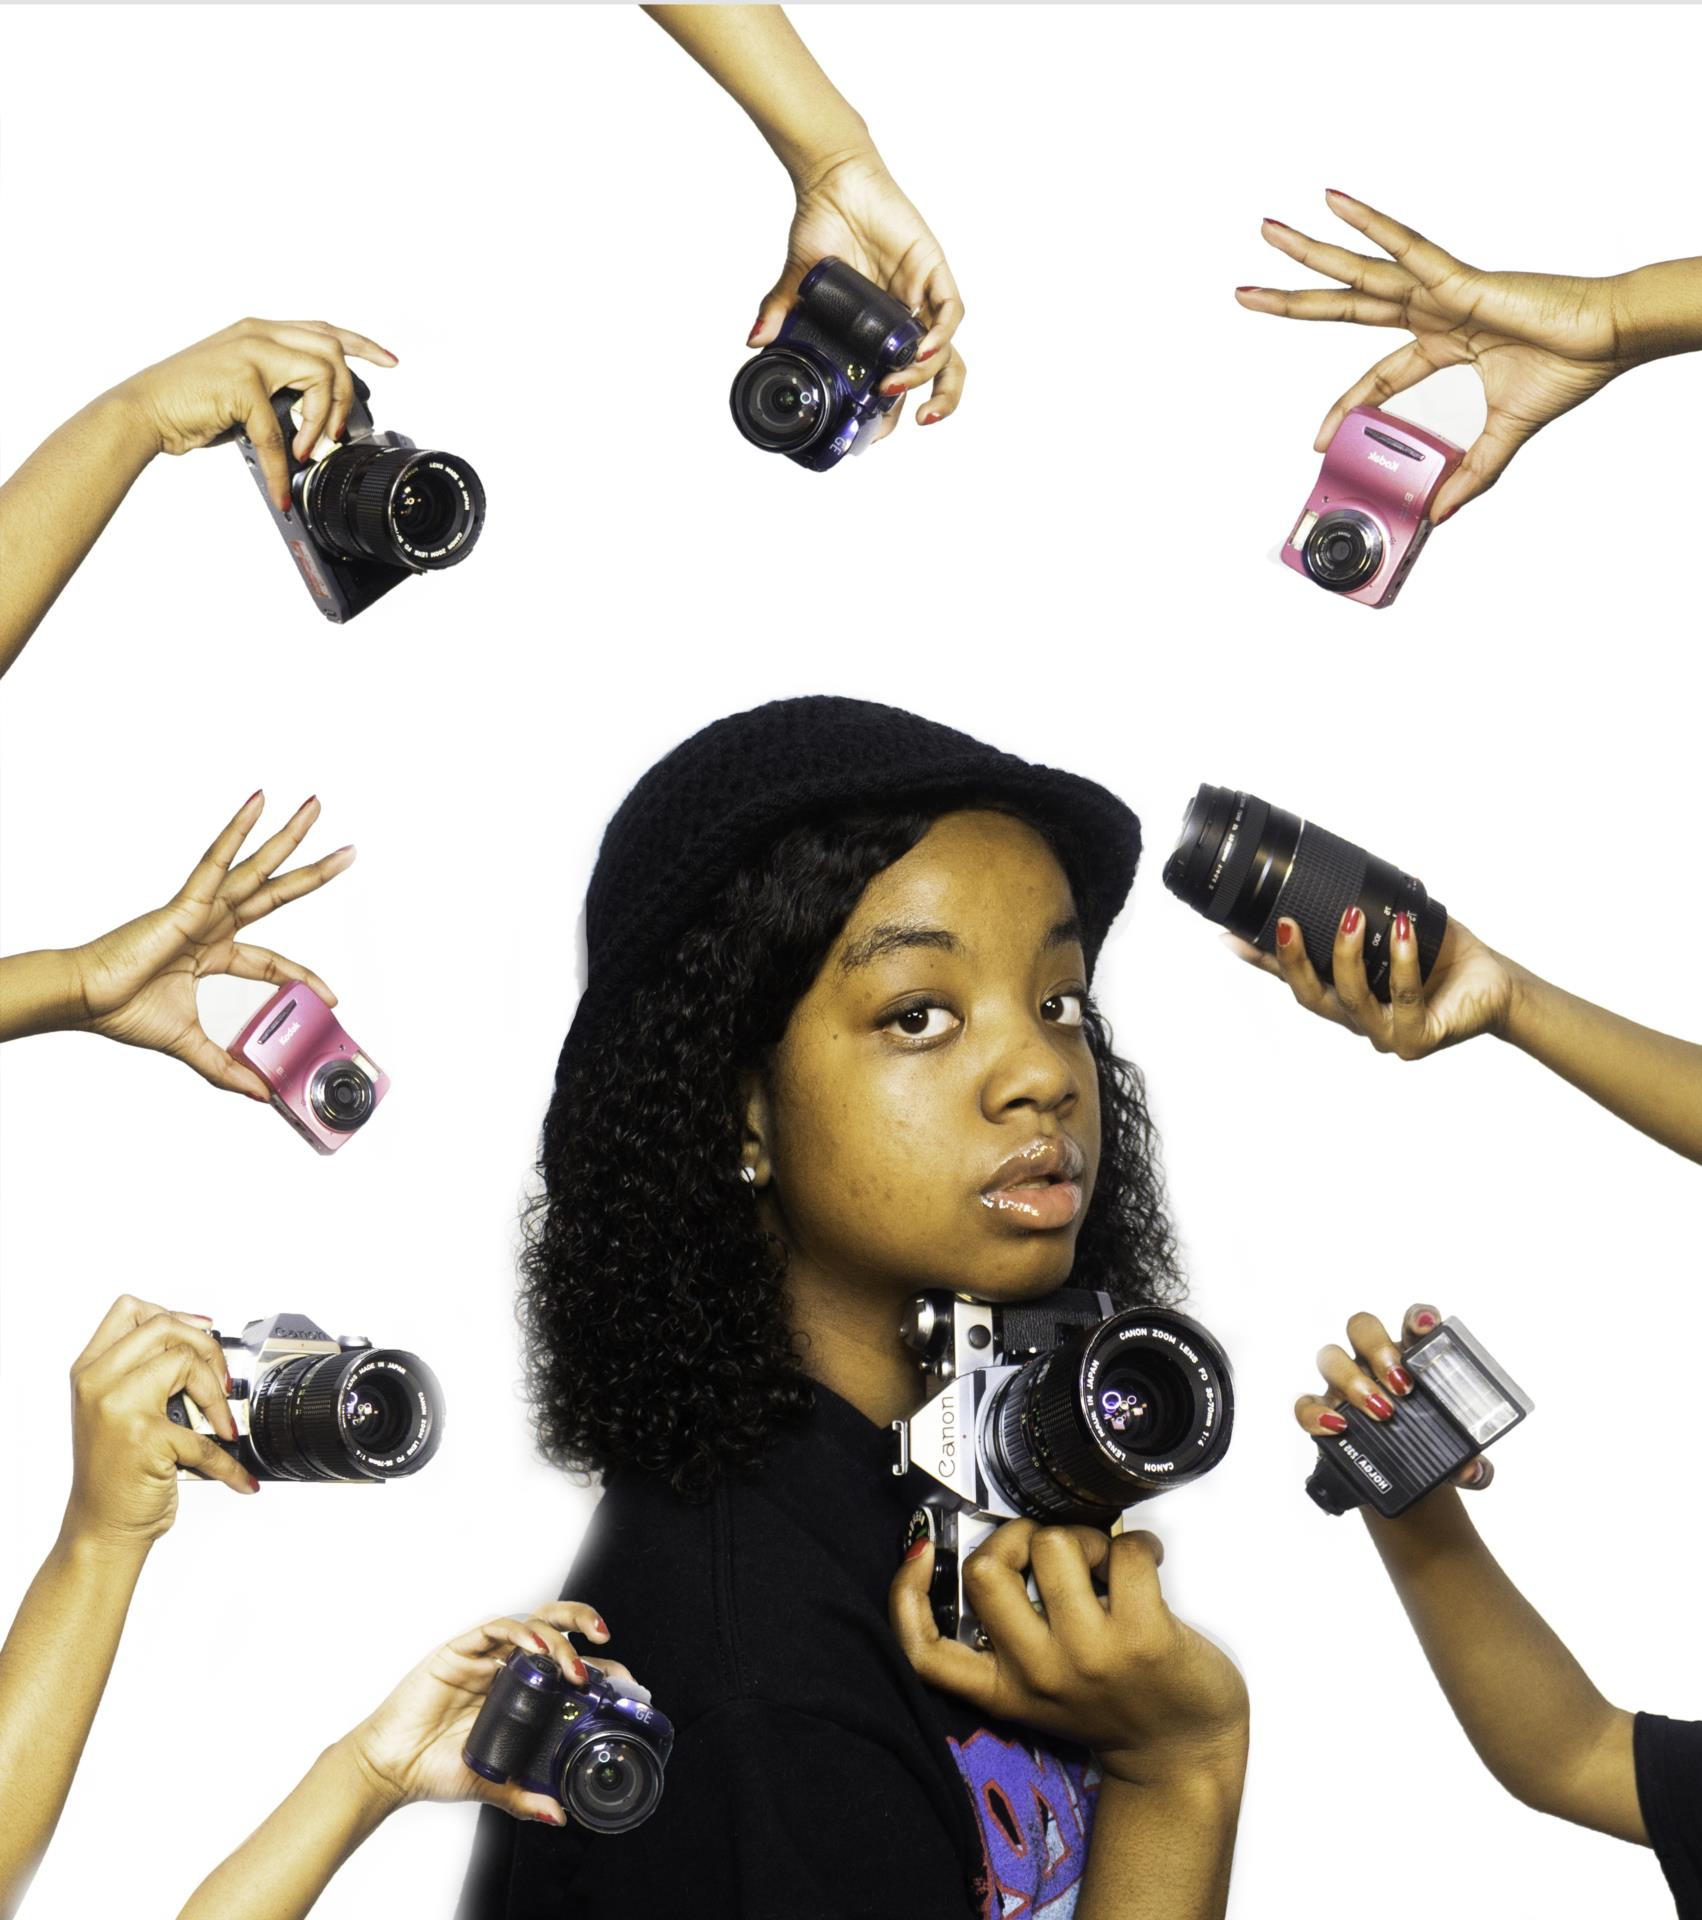 Senior Maya Peroune holding a camera with many hands holding cameras around her